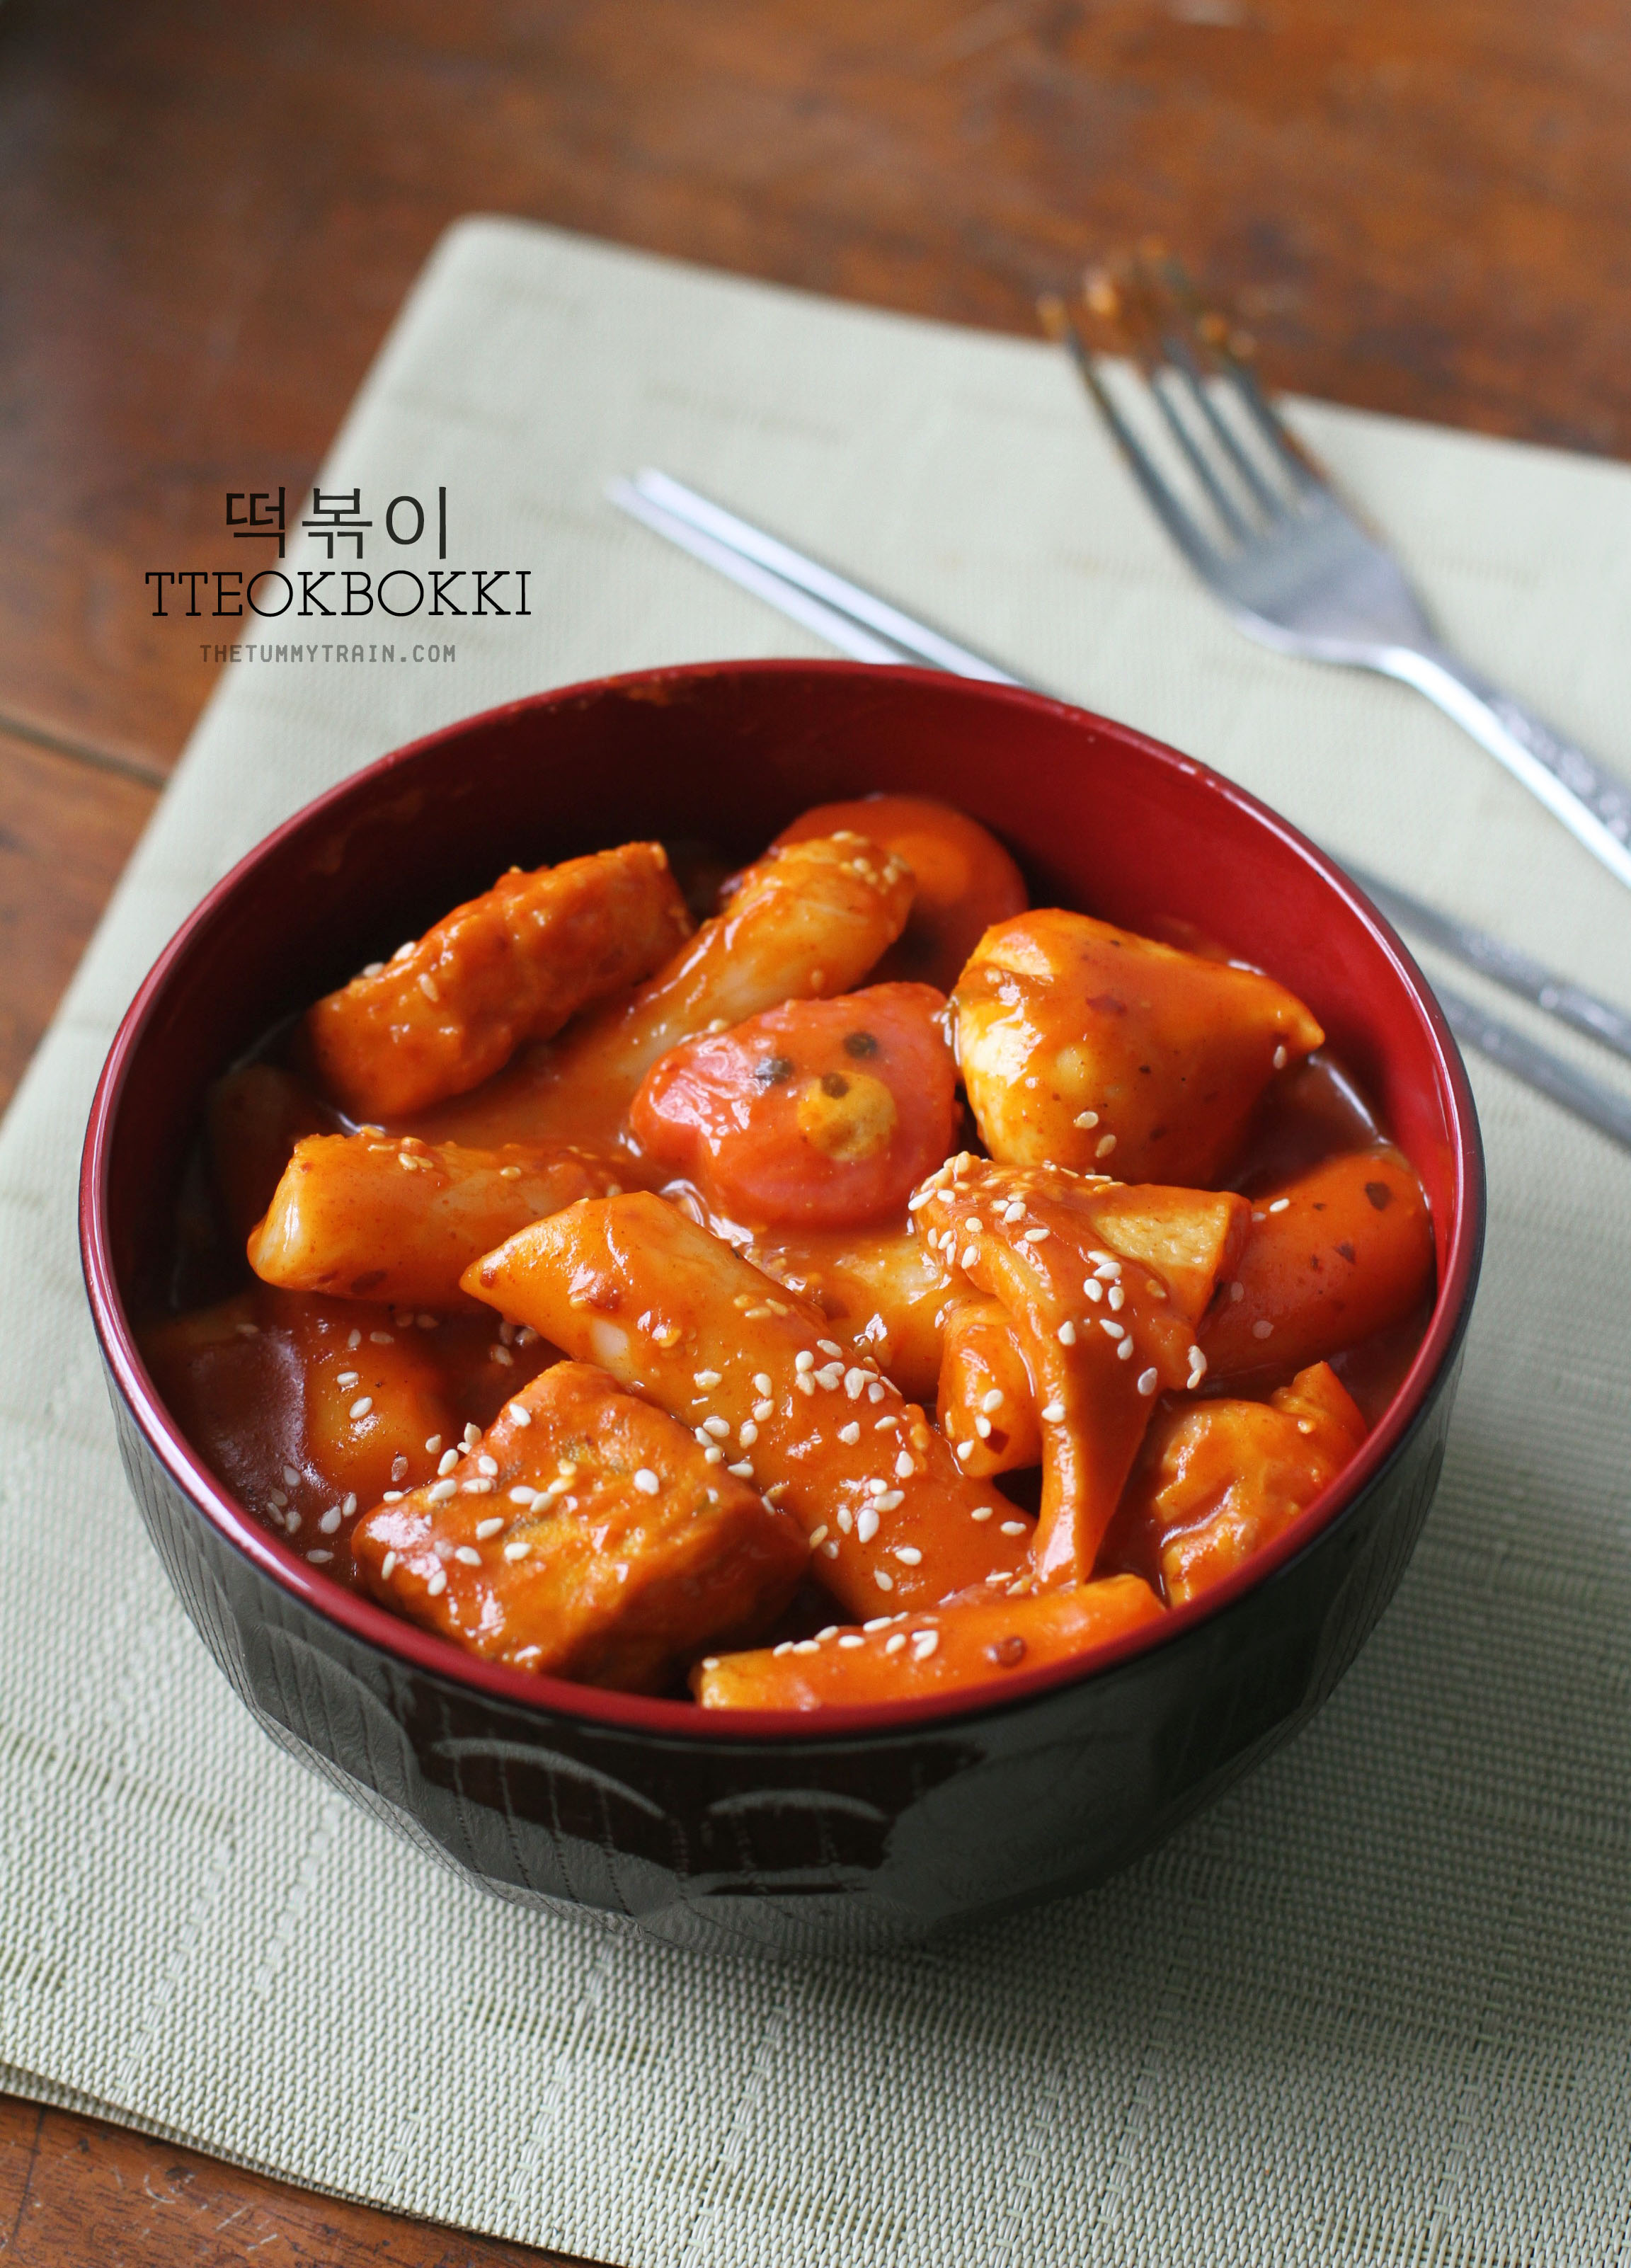 Homemade tteokbokki recipe tteokbokki 1 a homemade tteokbokki recipe because im missing seoul forumfinder Choice Image